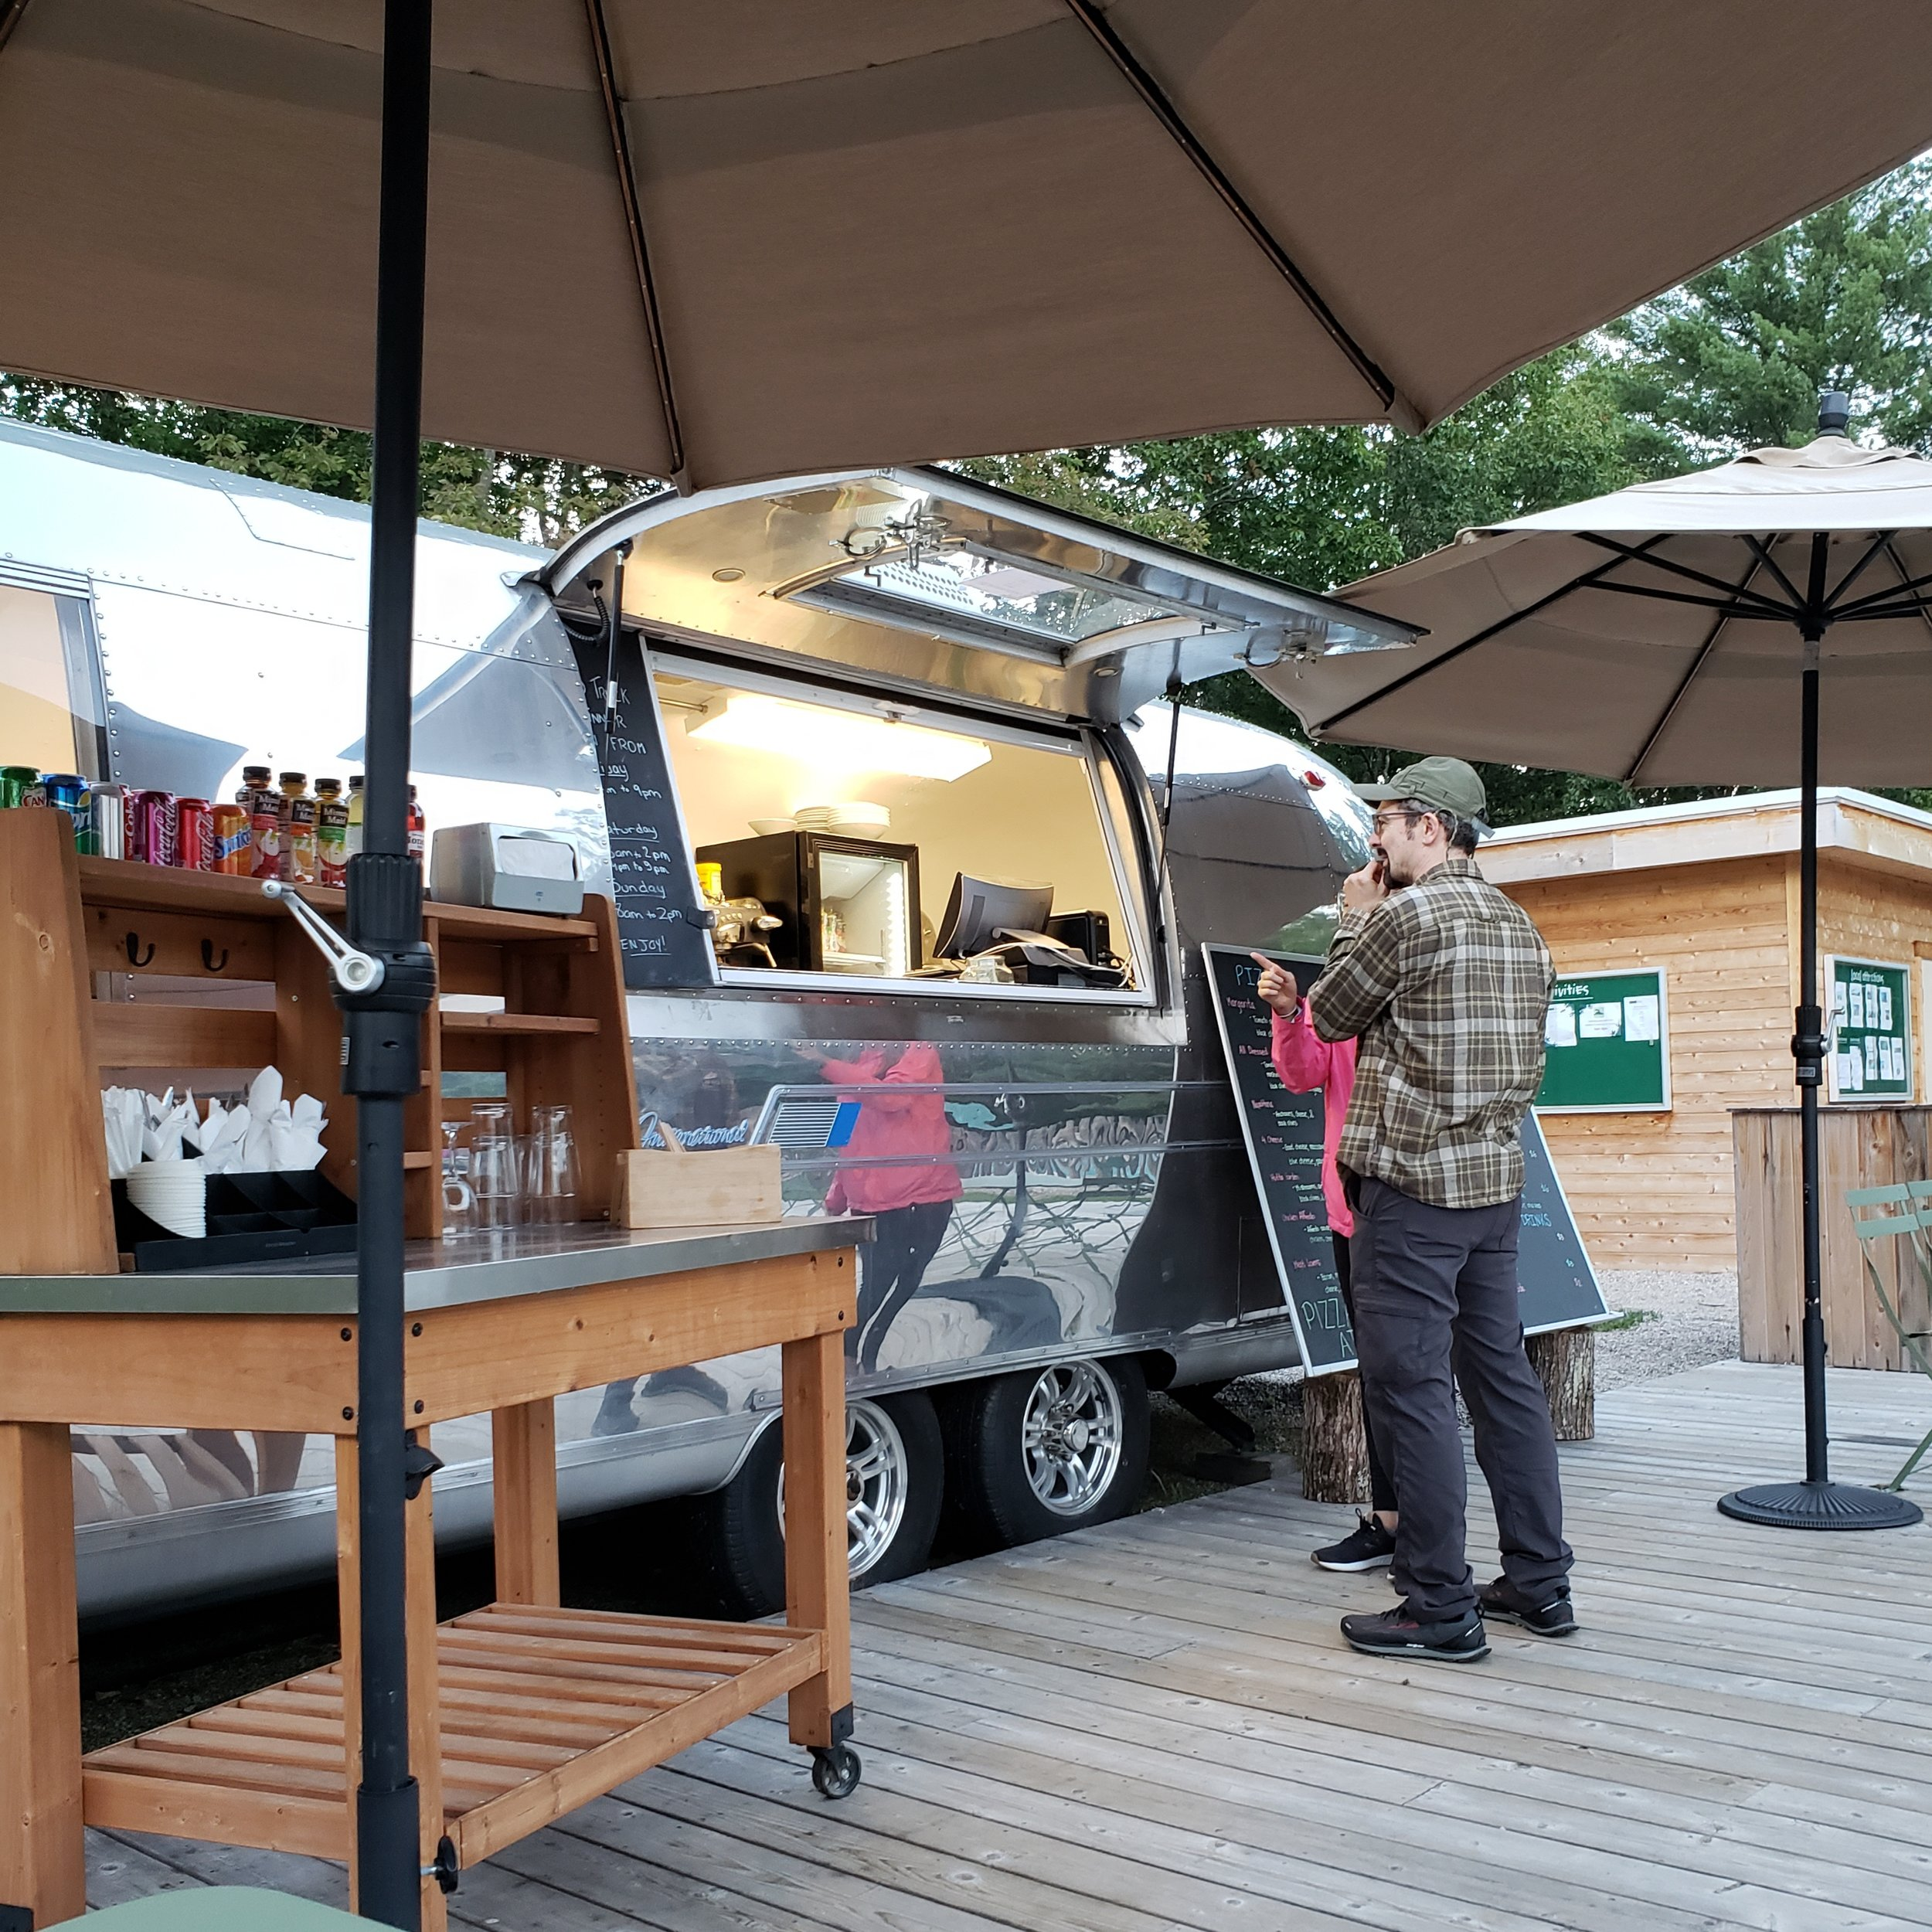 I ordered ALL THE FOOD AND BEVERAGES from the Huttopia Airstream!